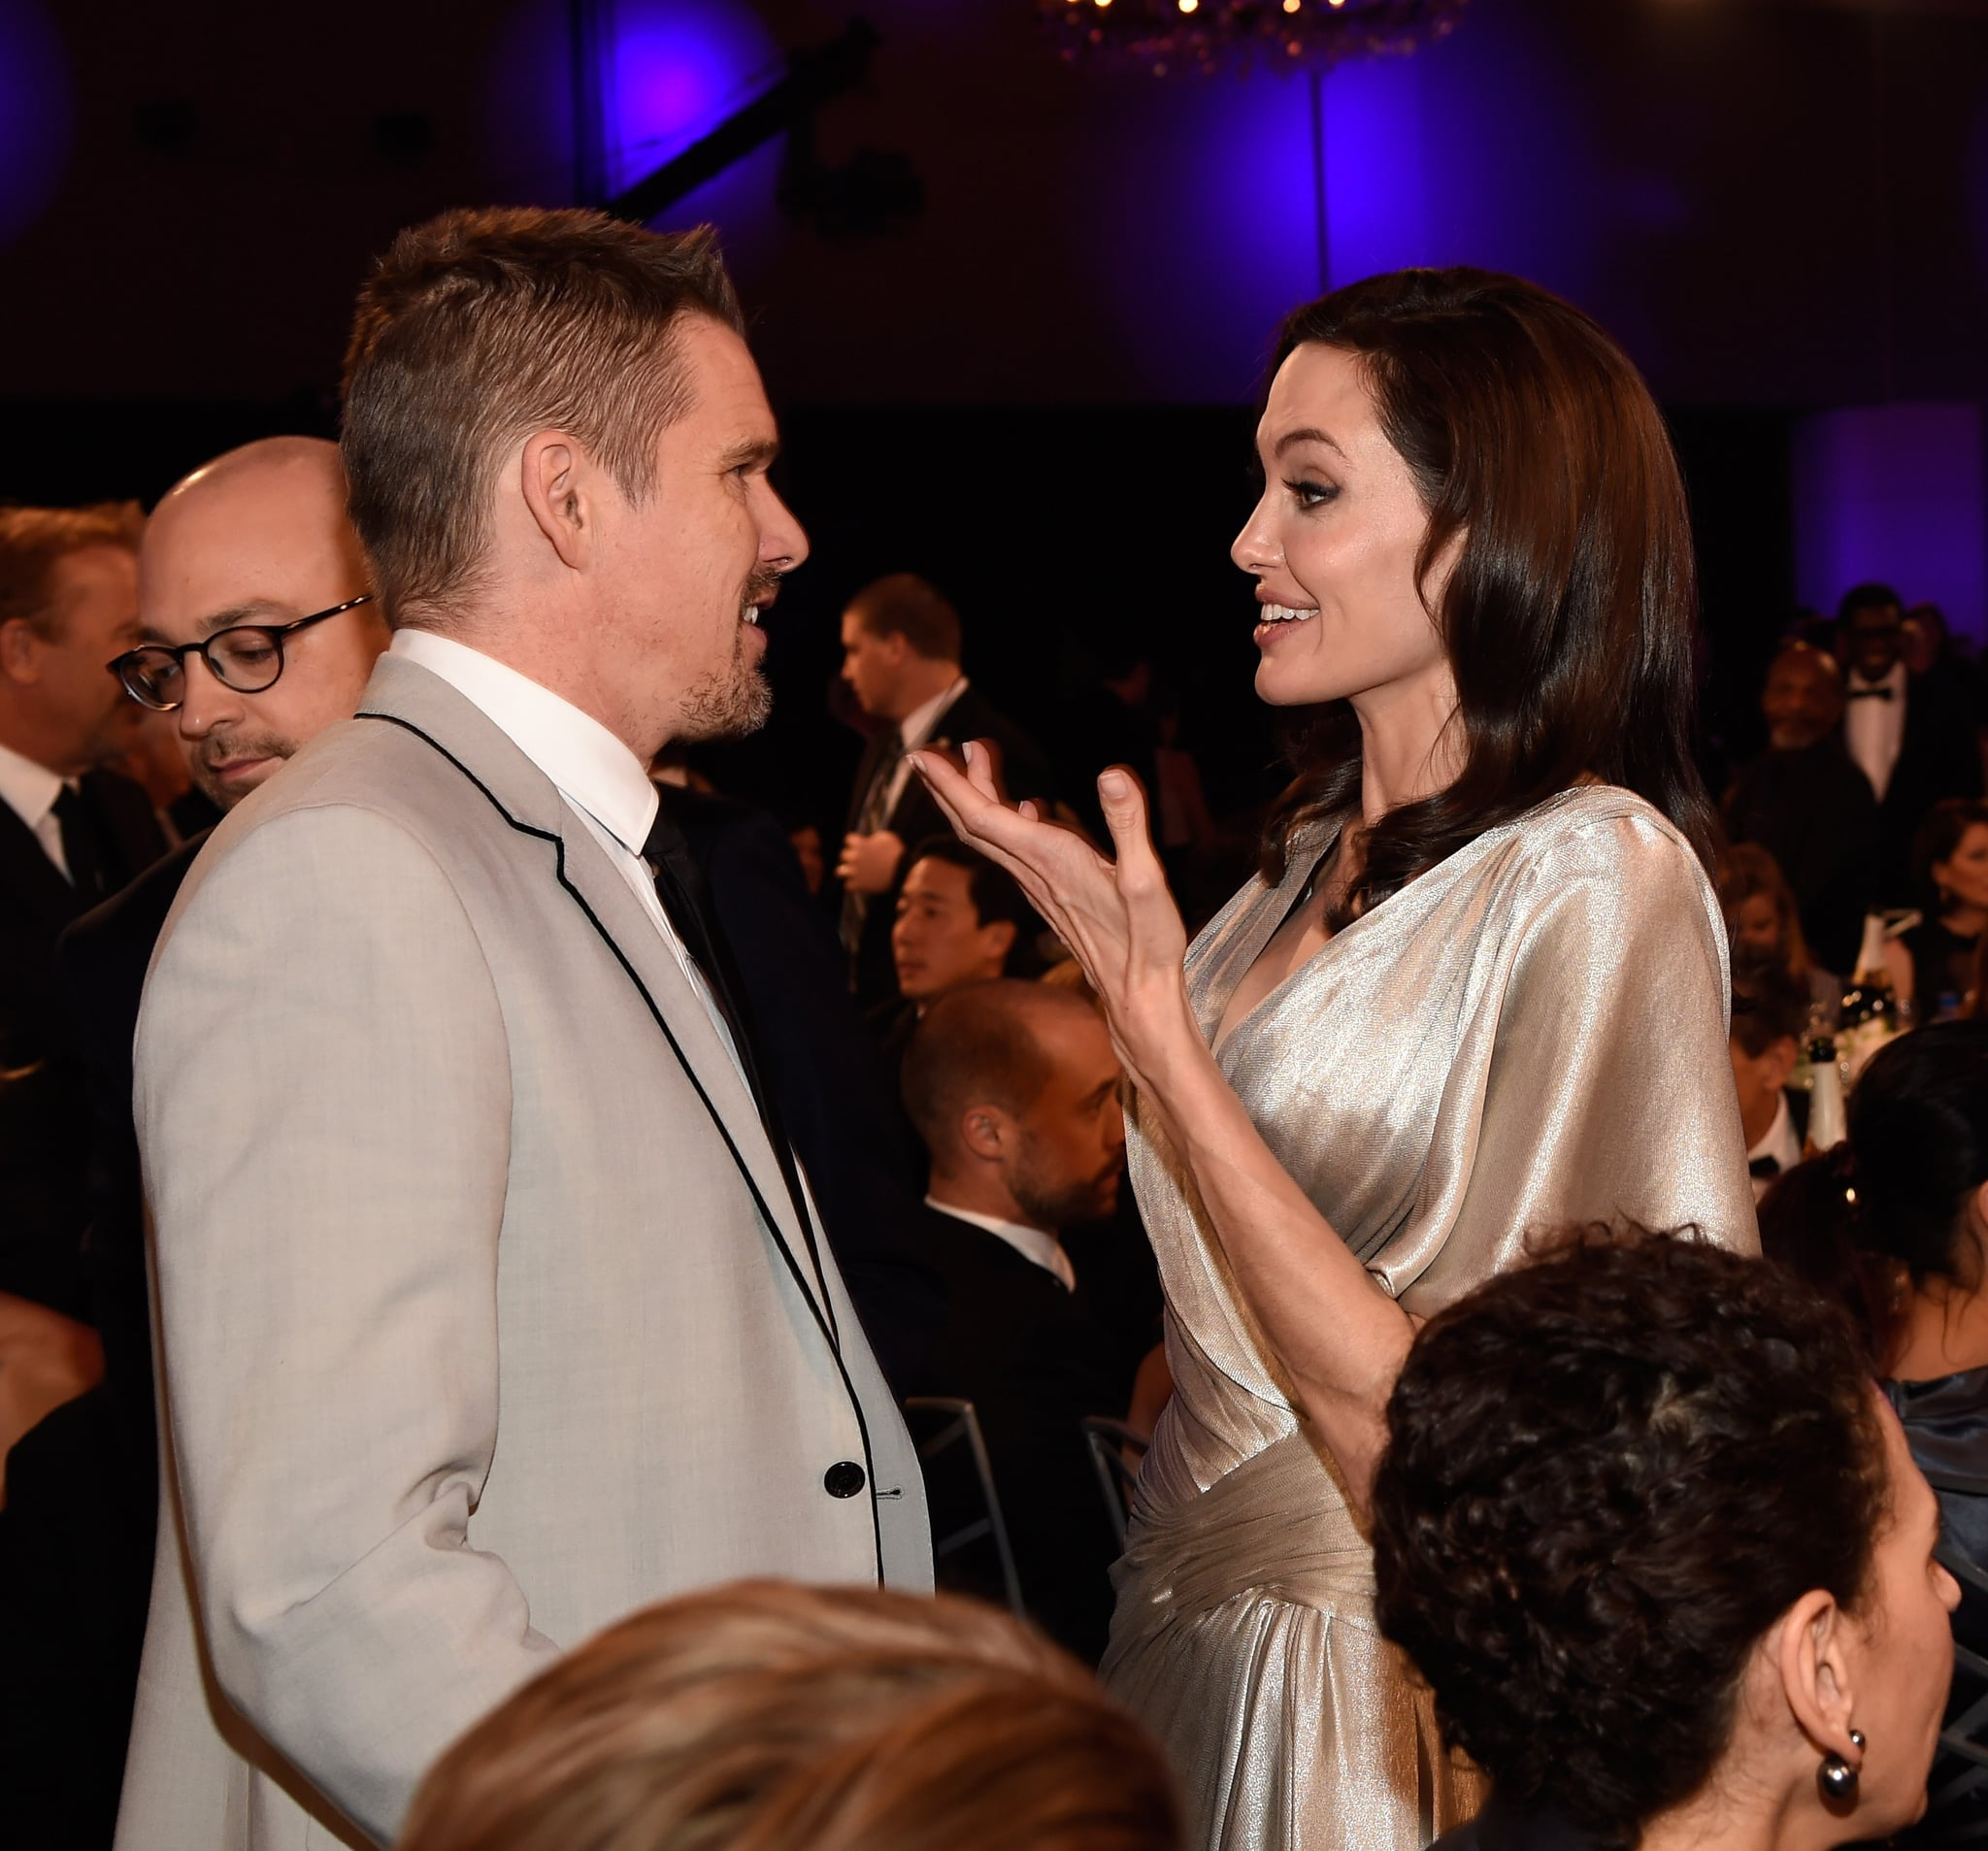 Angelina Had A Smiley Reunion With Her Taking Lives Costar Ethan